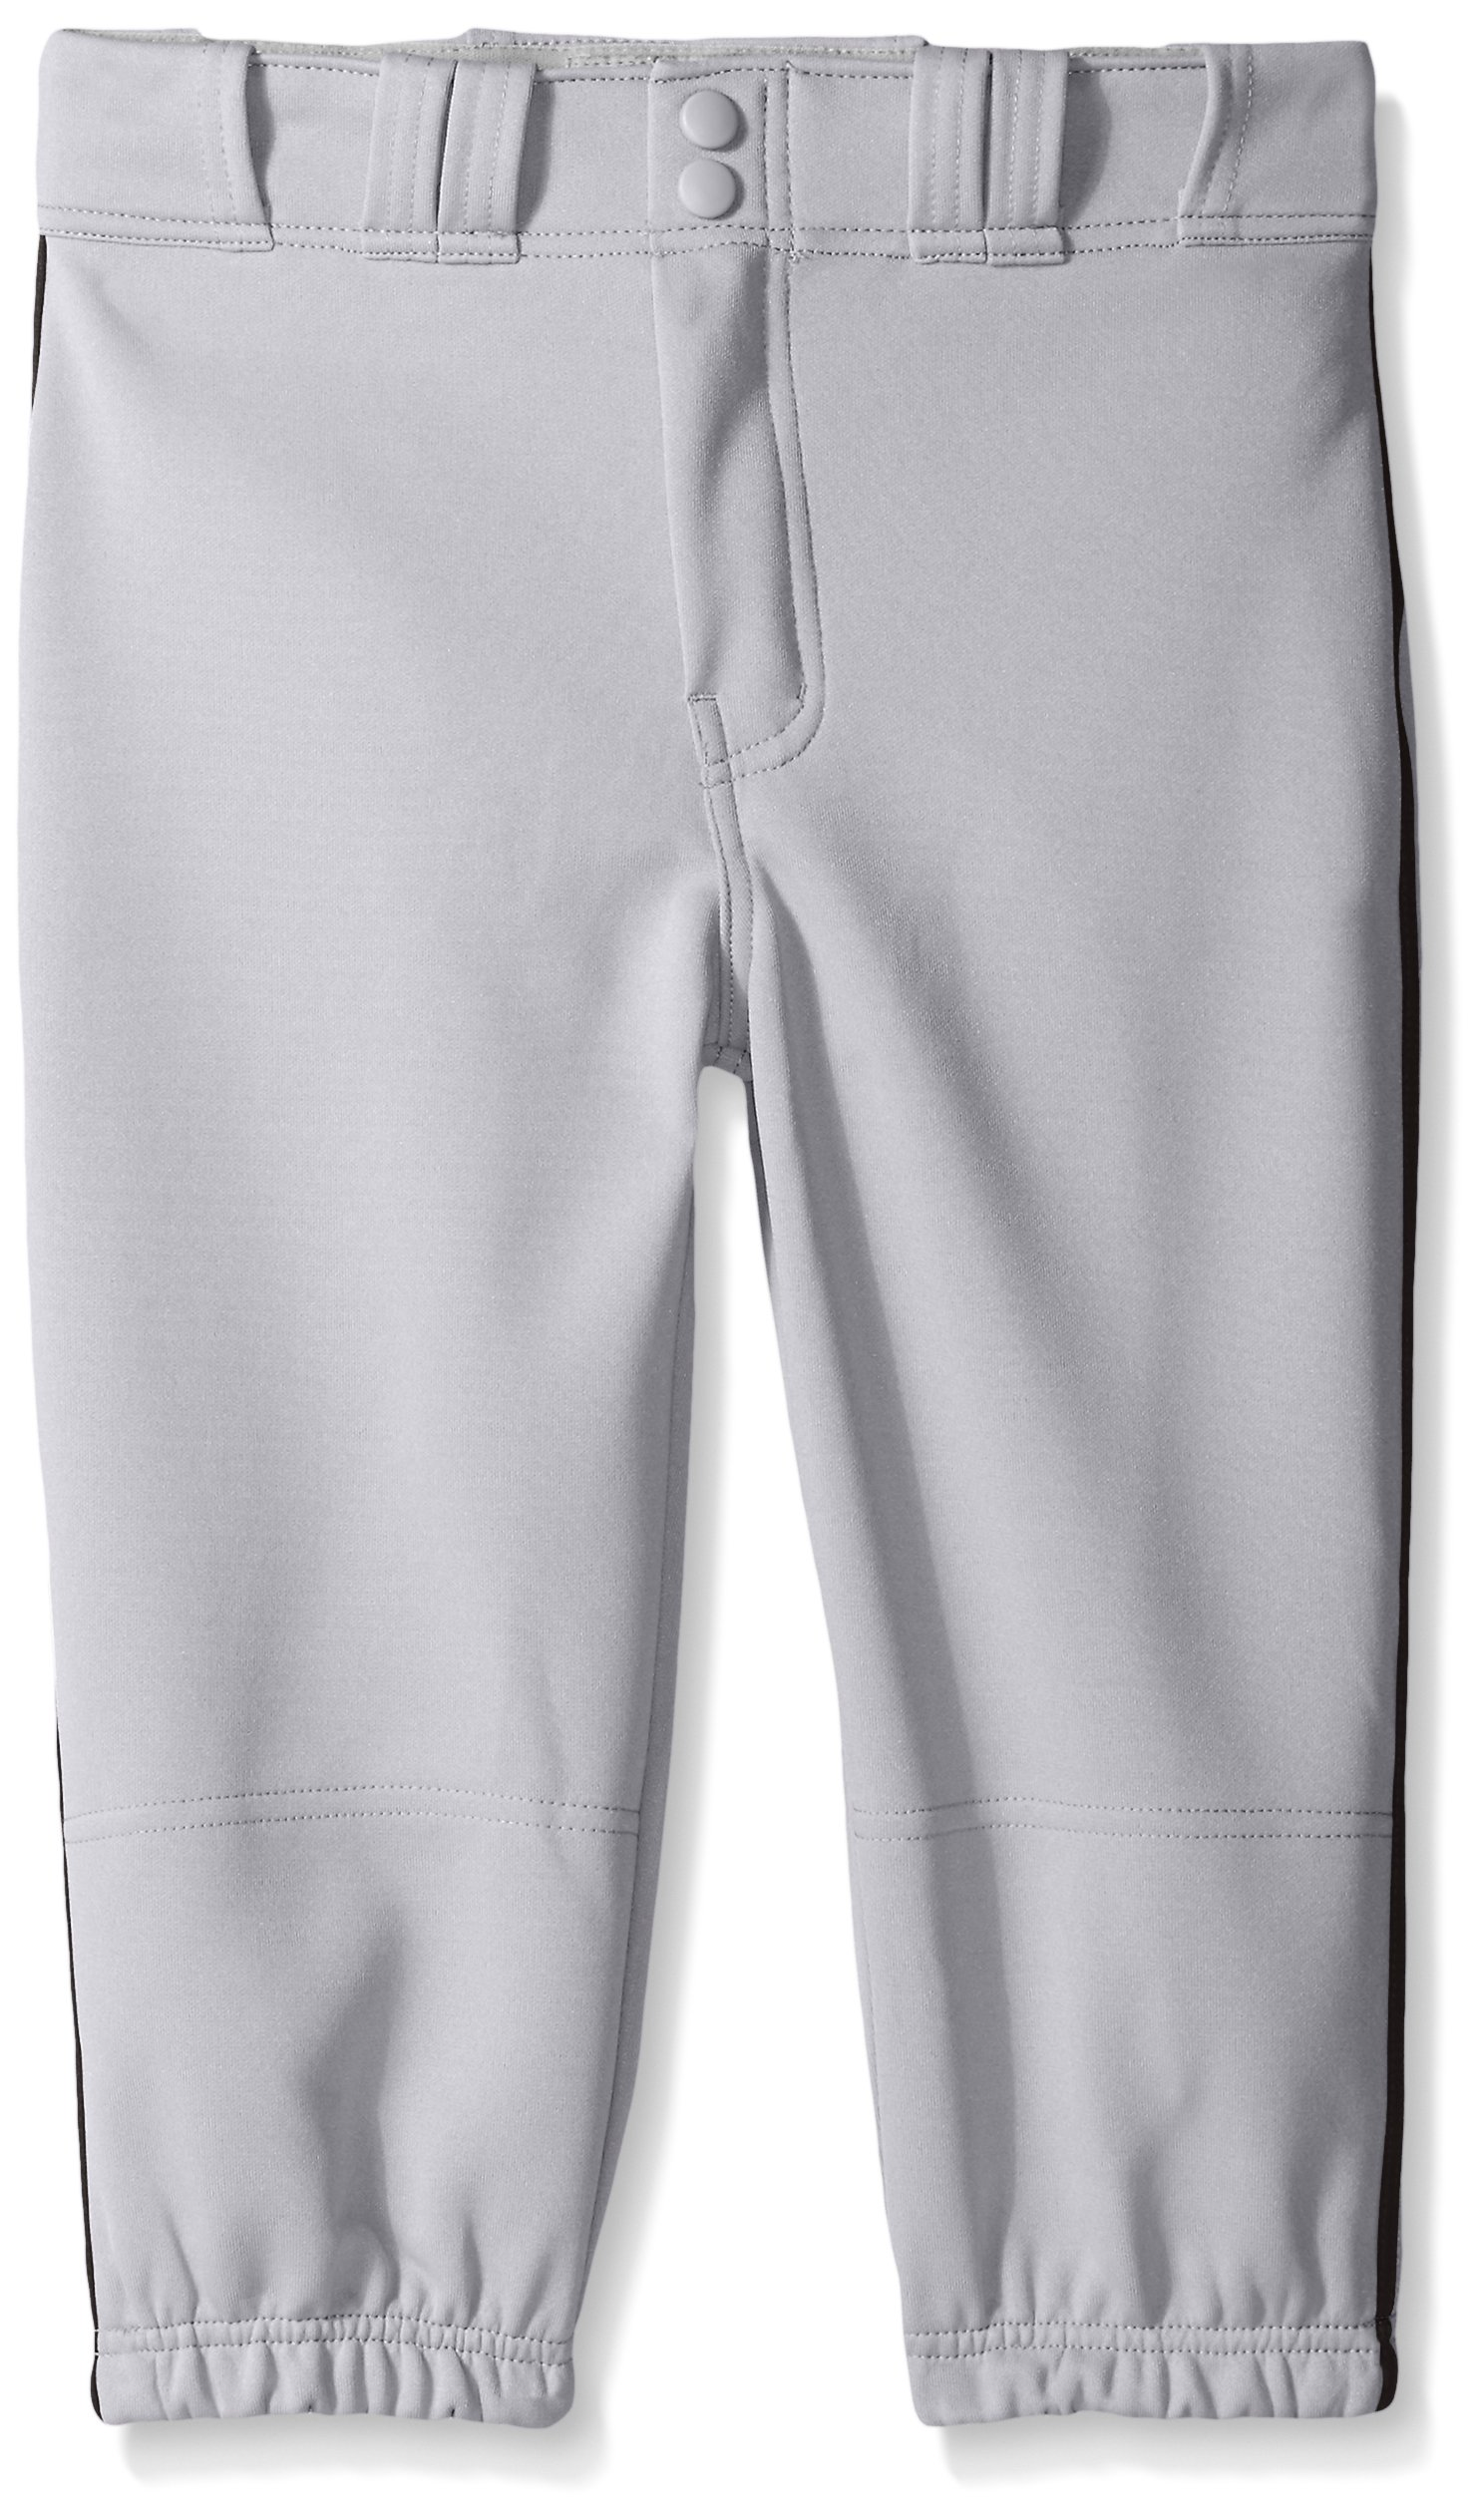 Easton Boys PRO Plus Piped Knicker, Grey/Black, Large by Easton